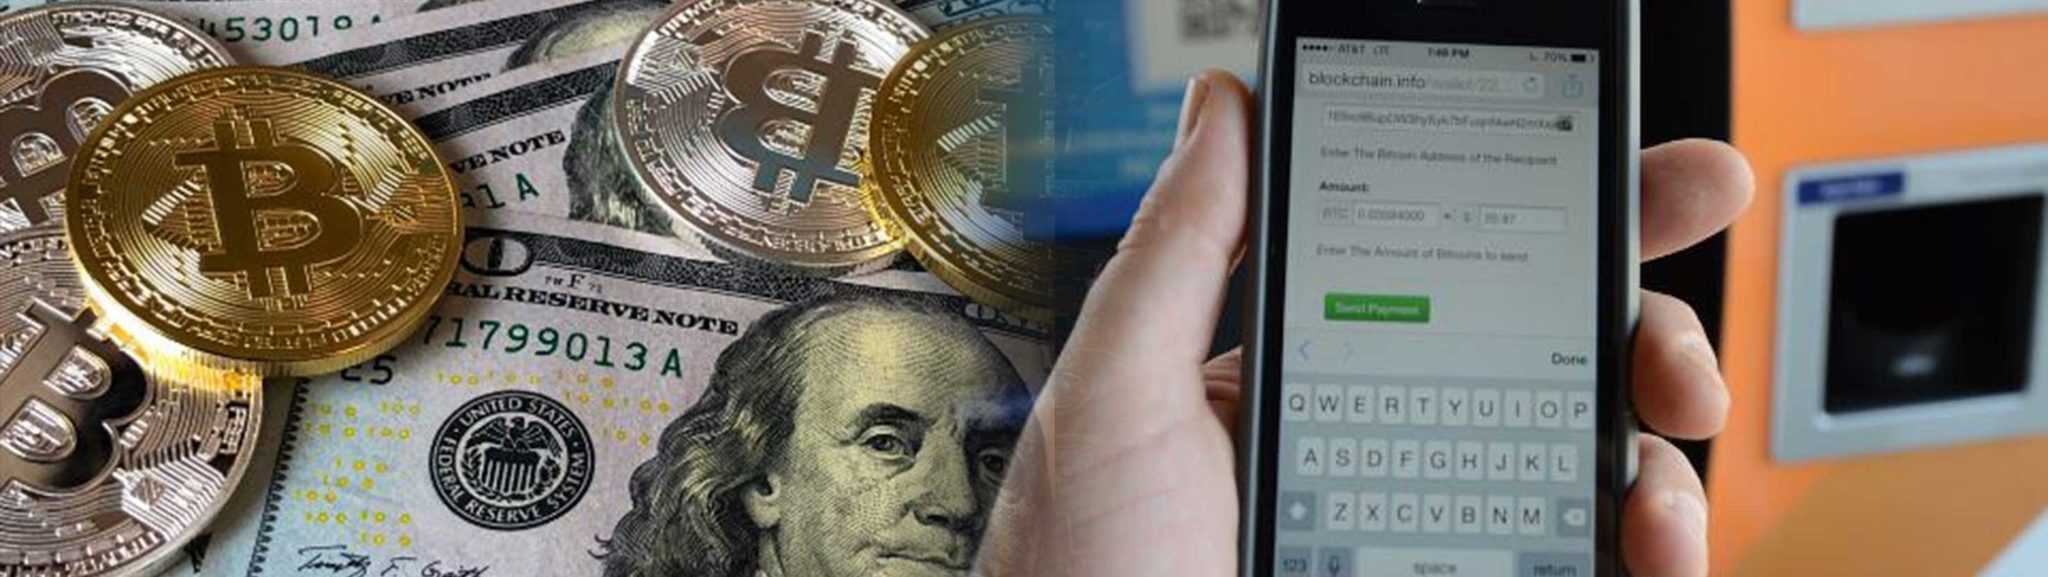 transfering crypto exchanged dollars using mobile device